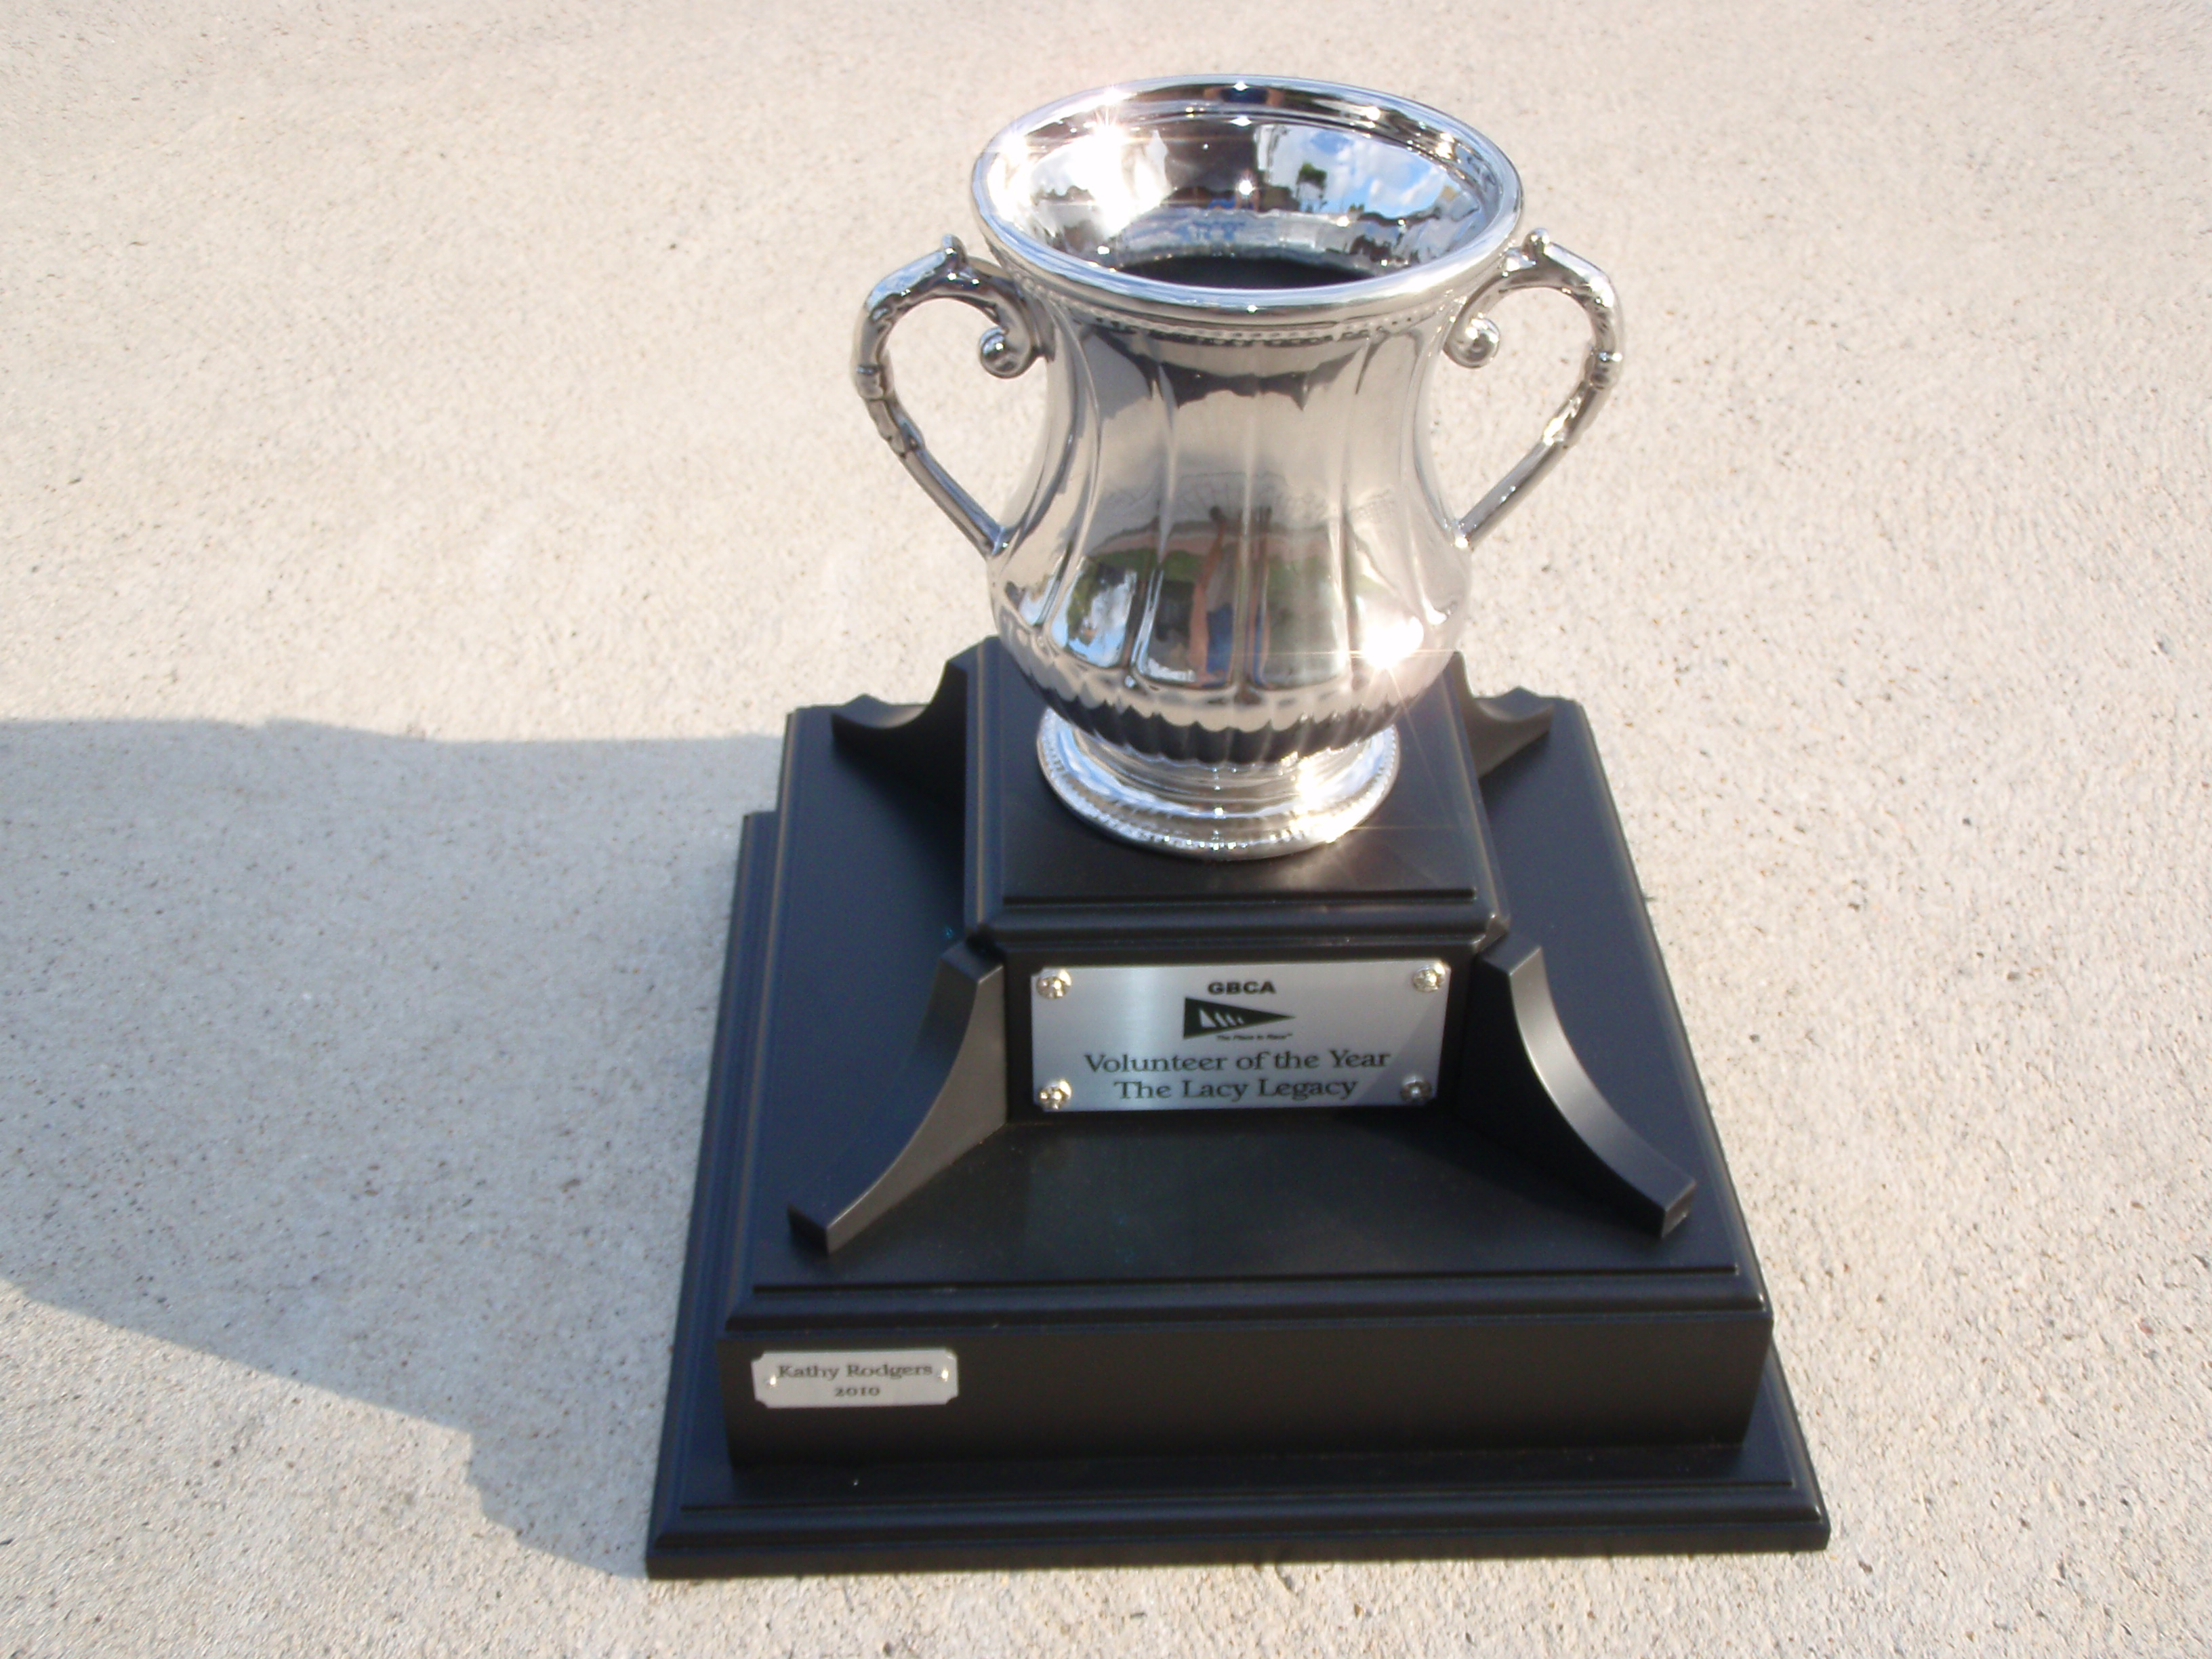 Volunteer Lacy Legacy Trophy